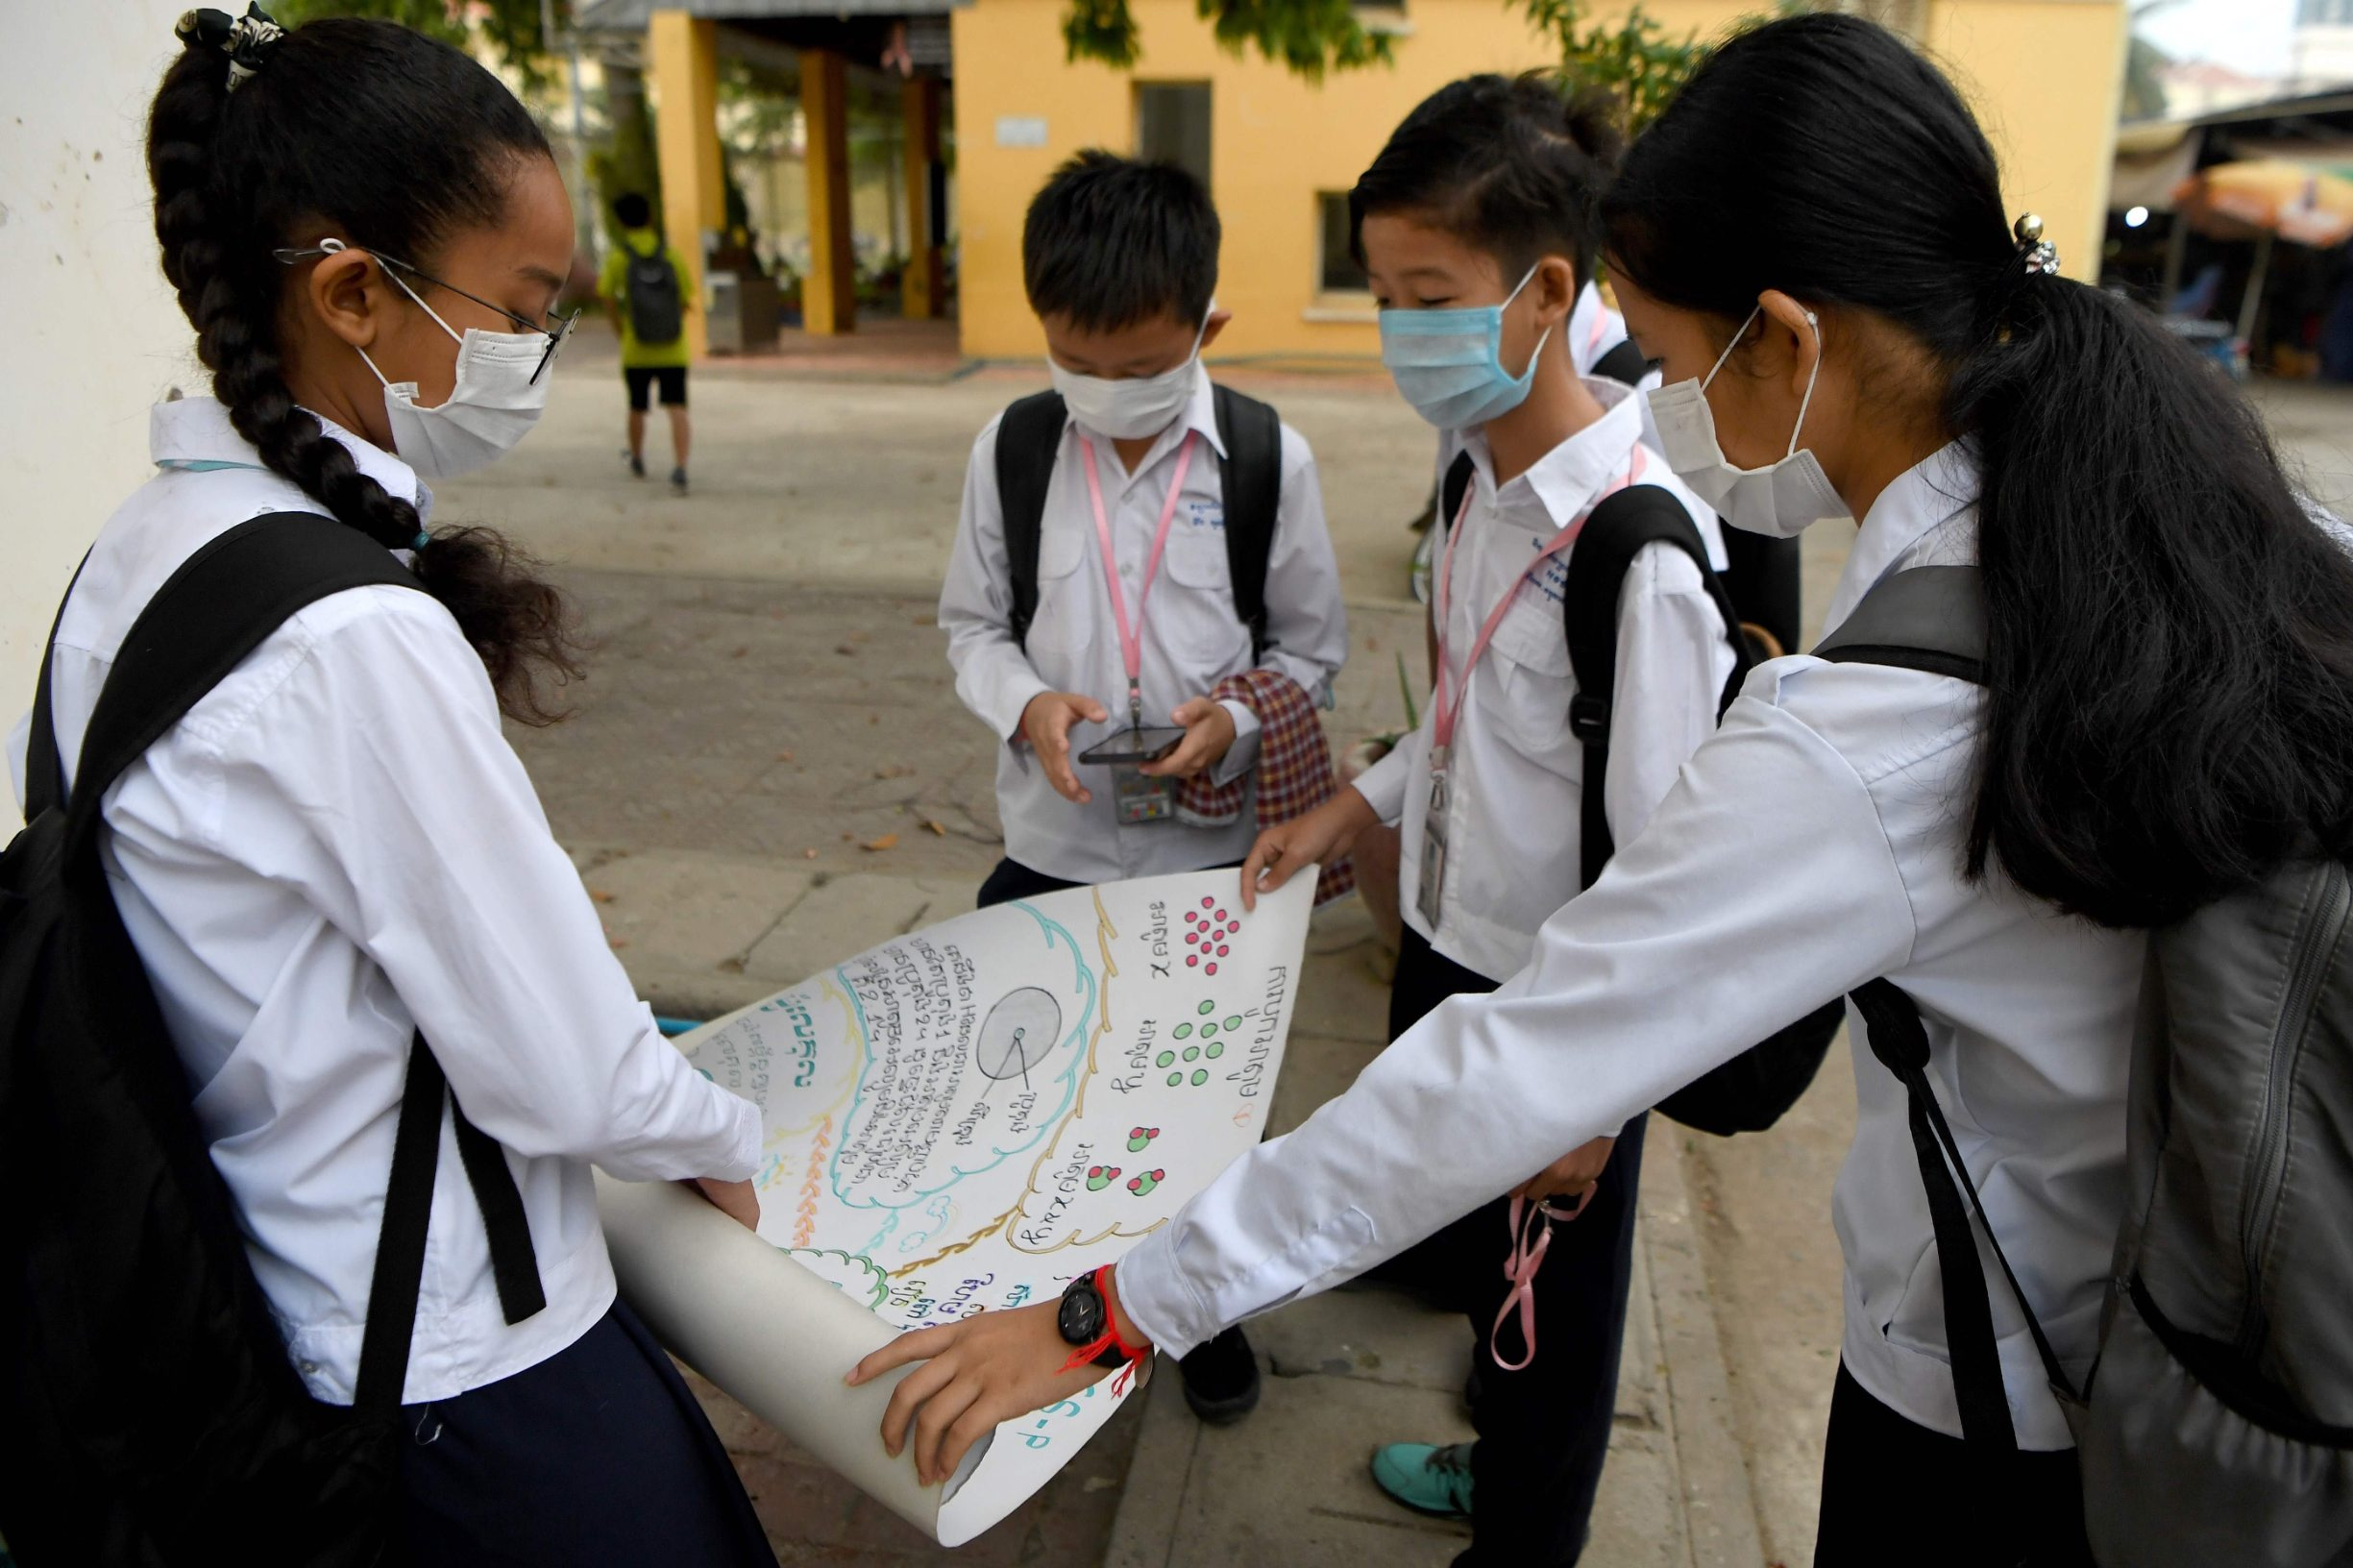 Mask-clad students discuss their homework at a school in Phnom Penh on January 28, 2020. - Cambodia's health ministry reported the country's first case of the deadly coronavirus on January 27. The virus, which can cause a pneumonia-like acute respiratory infection, has in a matter of weeks killed more 106 people and infected more than 4,000 in China, while cases have been identified in more than a dozen other countries. (Photo by TANG CHHIN Sothy / AFP)